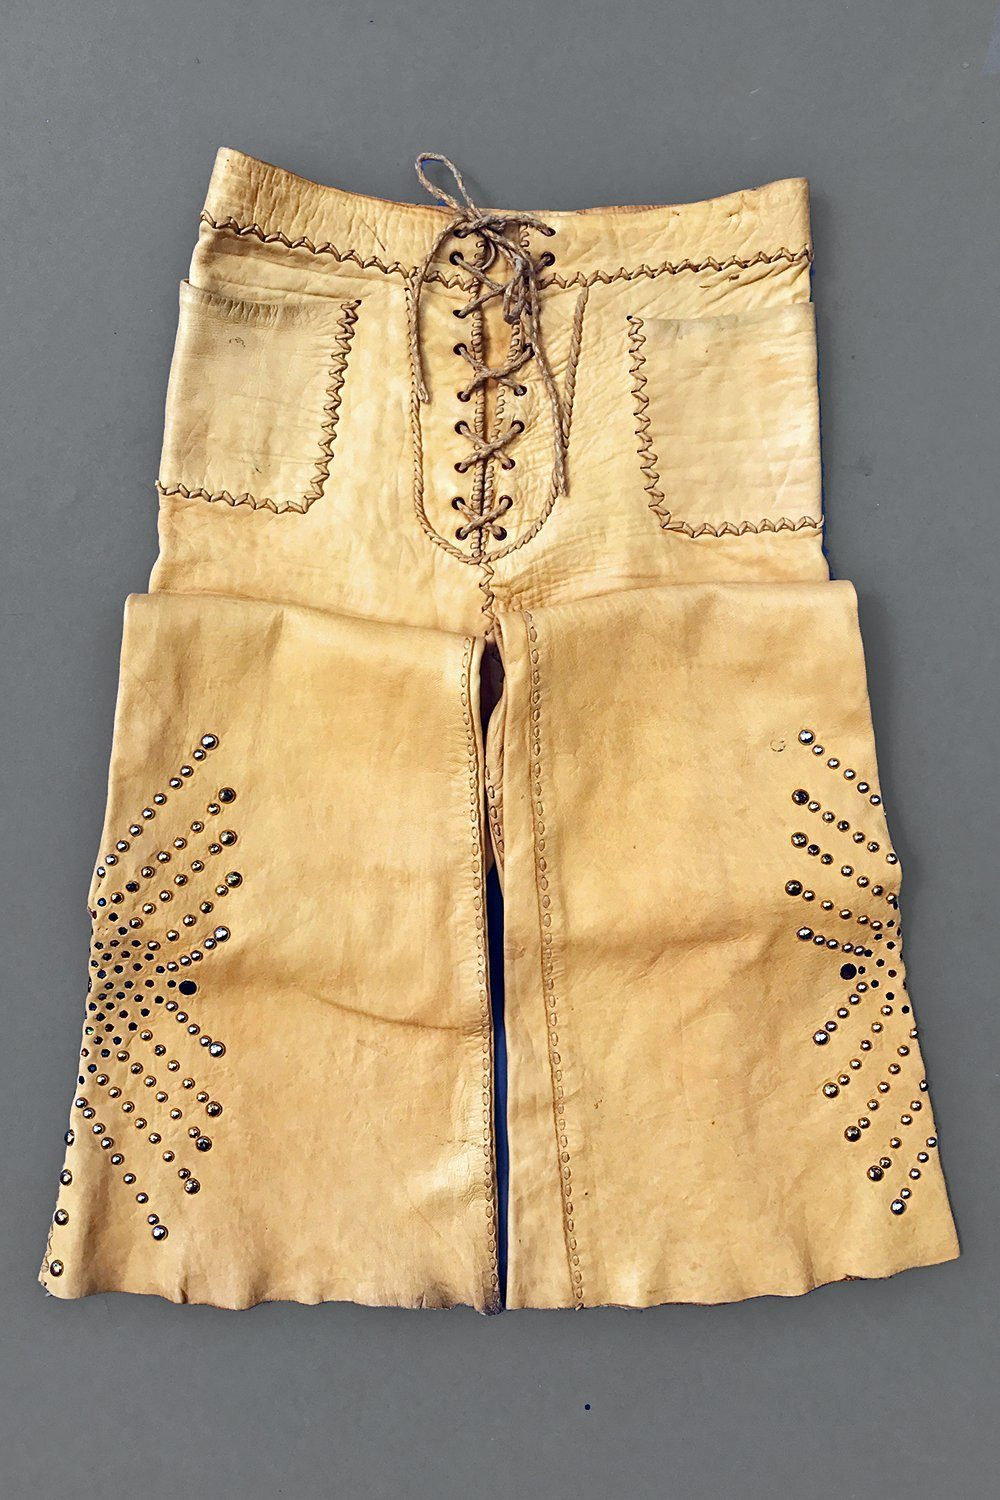 Extremely Rare 👑 1960s OOAK Studded North Beach Leather Whipstitched Leather Pants